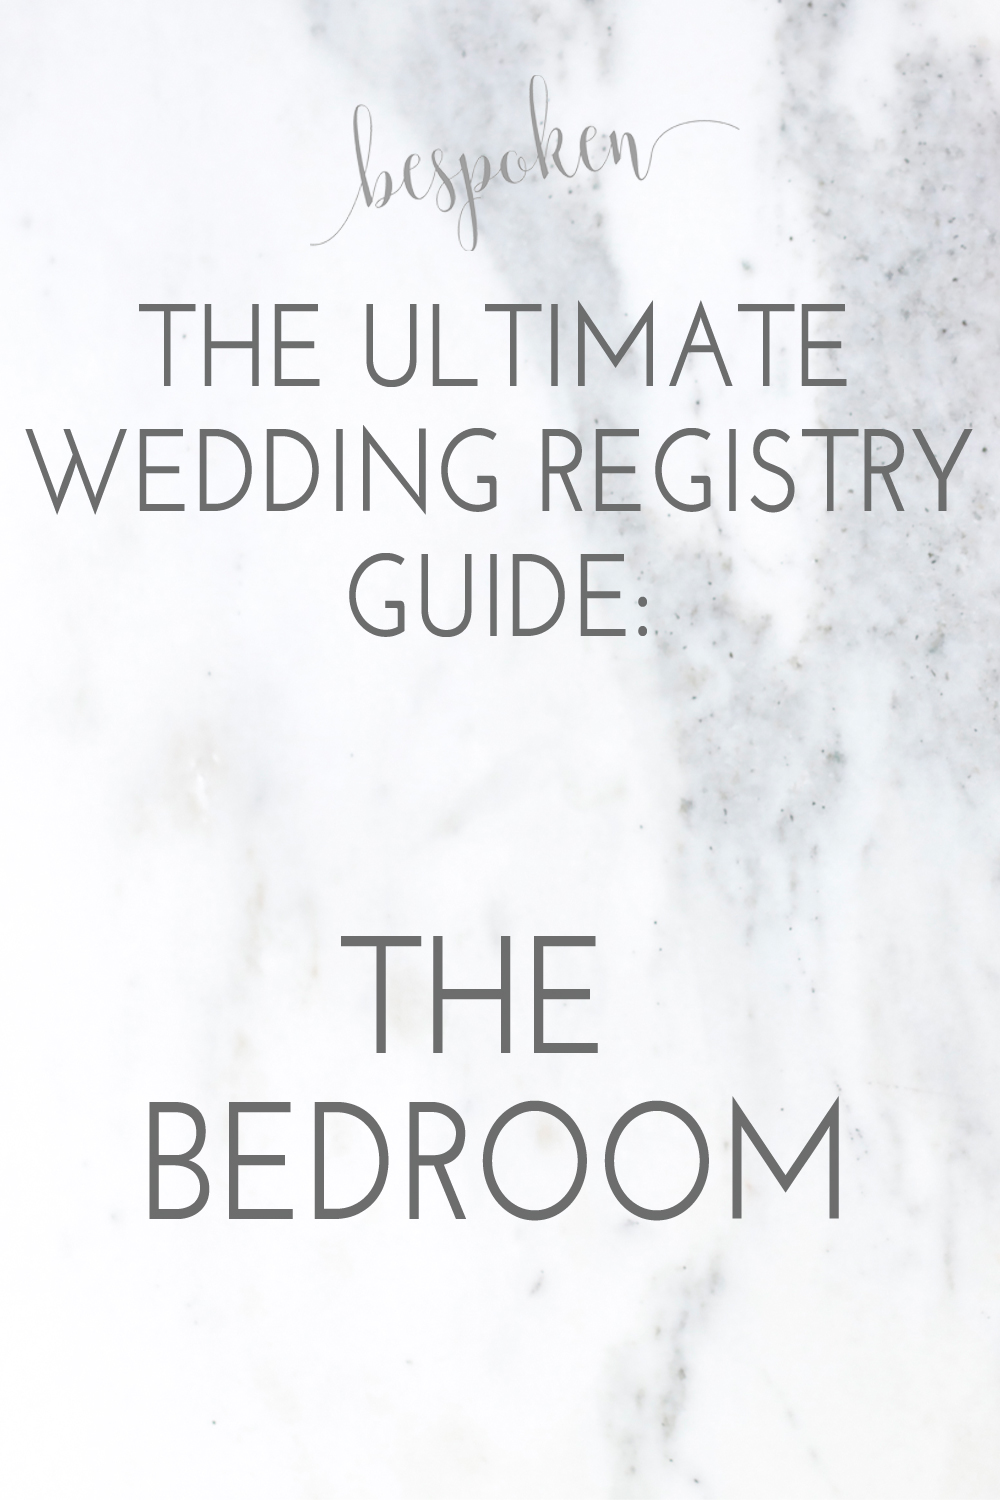 The Ultimate Wedding Registry Guide: The Bedroom | Bespoken www.bespokenweddings.com